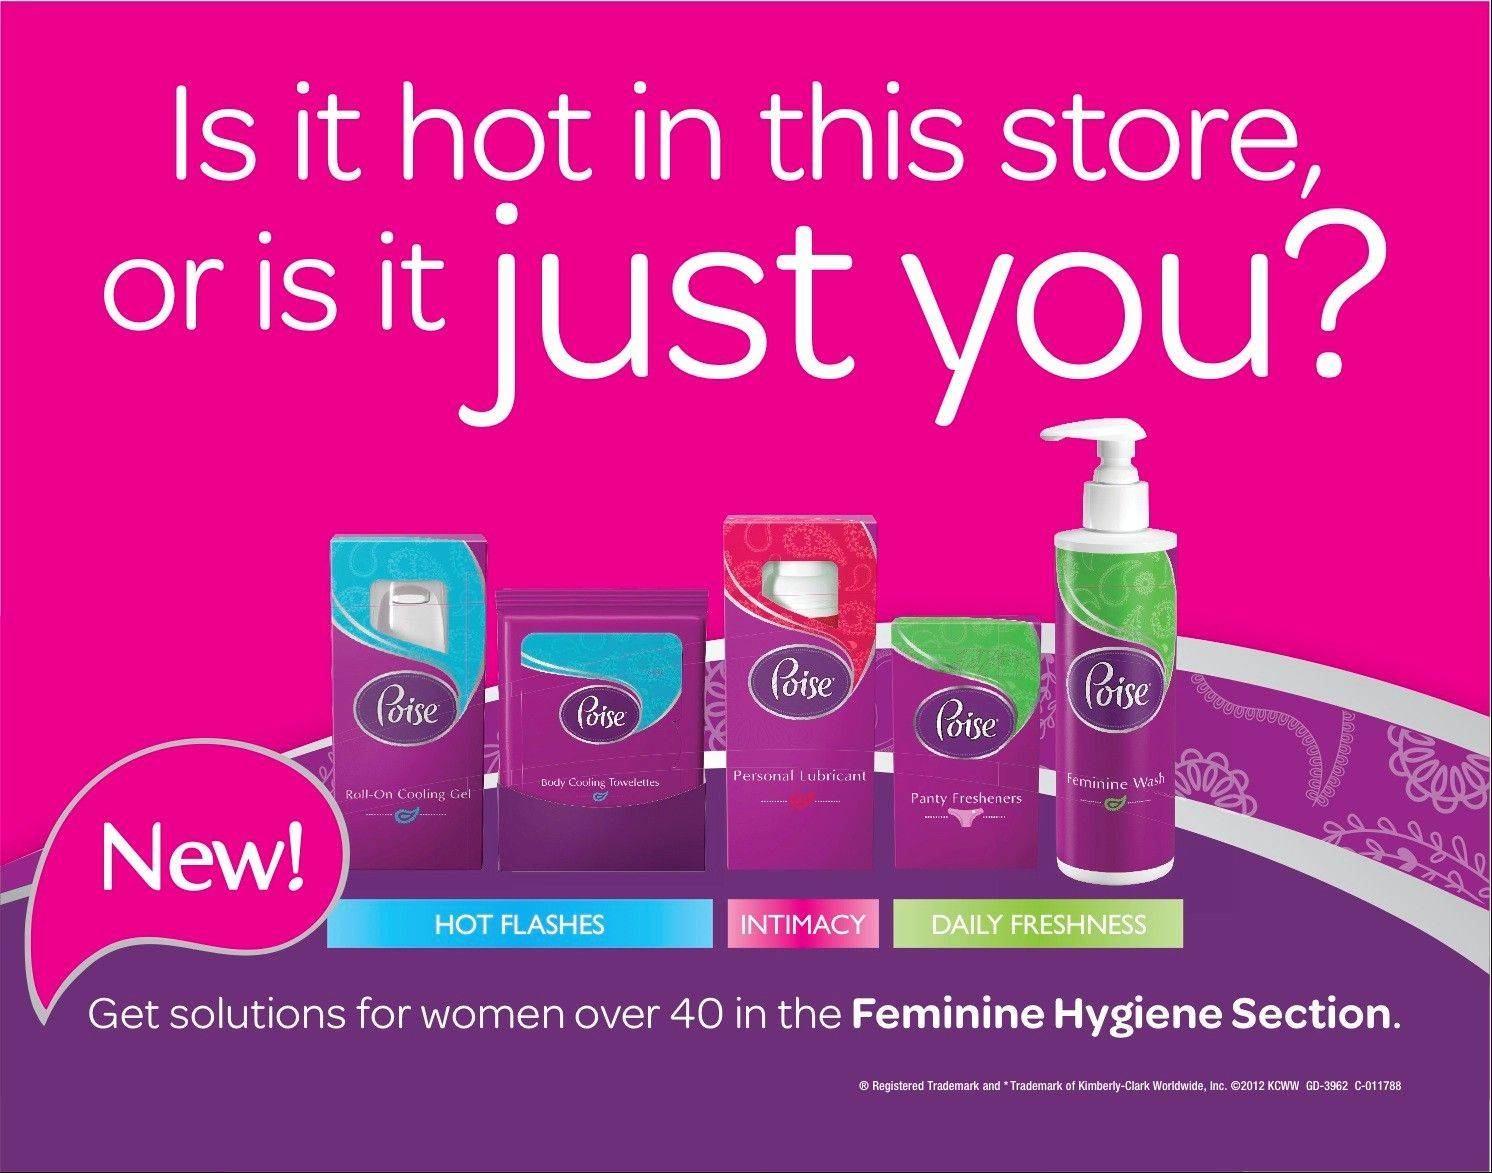 This undated handout photo shows an advertisement for the new line of Poise products from Kimberly-Clark. The new line, which targets 50 million American women who are or will soon go through menopause includes lubricant for vaginal dryness, panty freshener stickers and feminine wash for odor and cooling towelettes and roll-on gel to treat hot flashes.